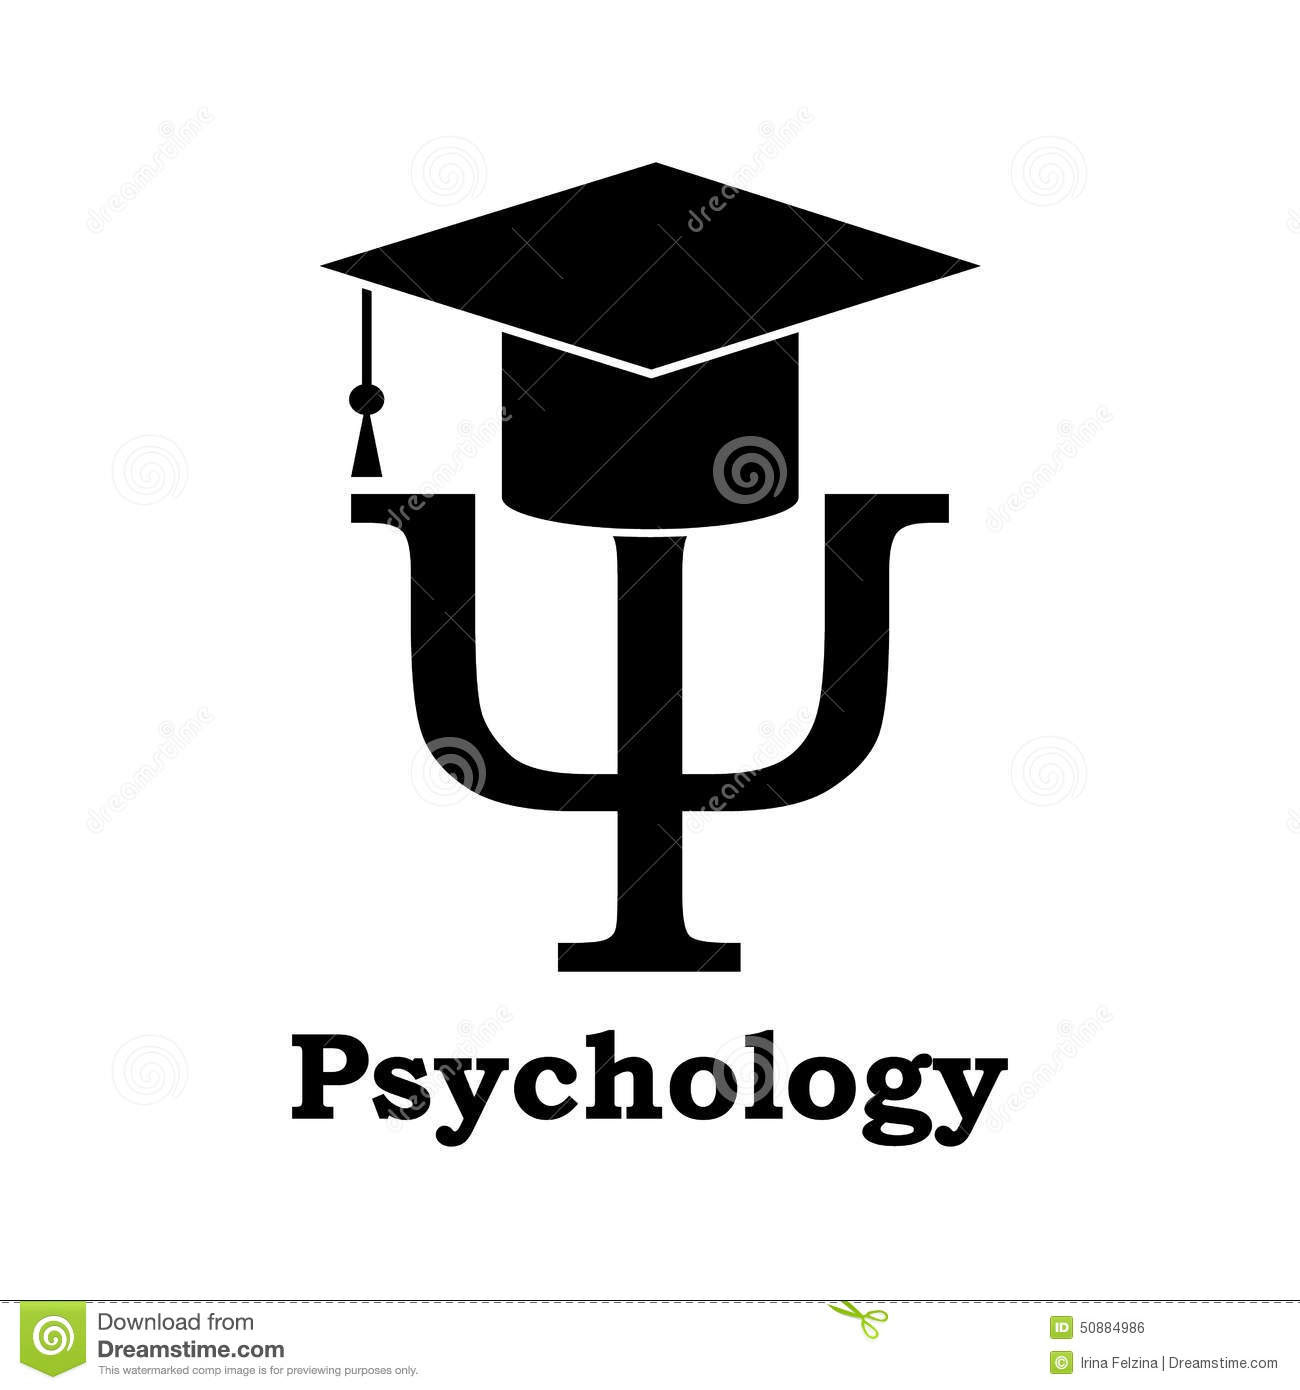 psychology learning black psi letter graduation hat white 50884986